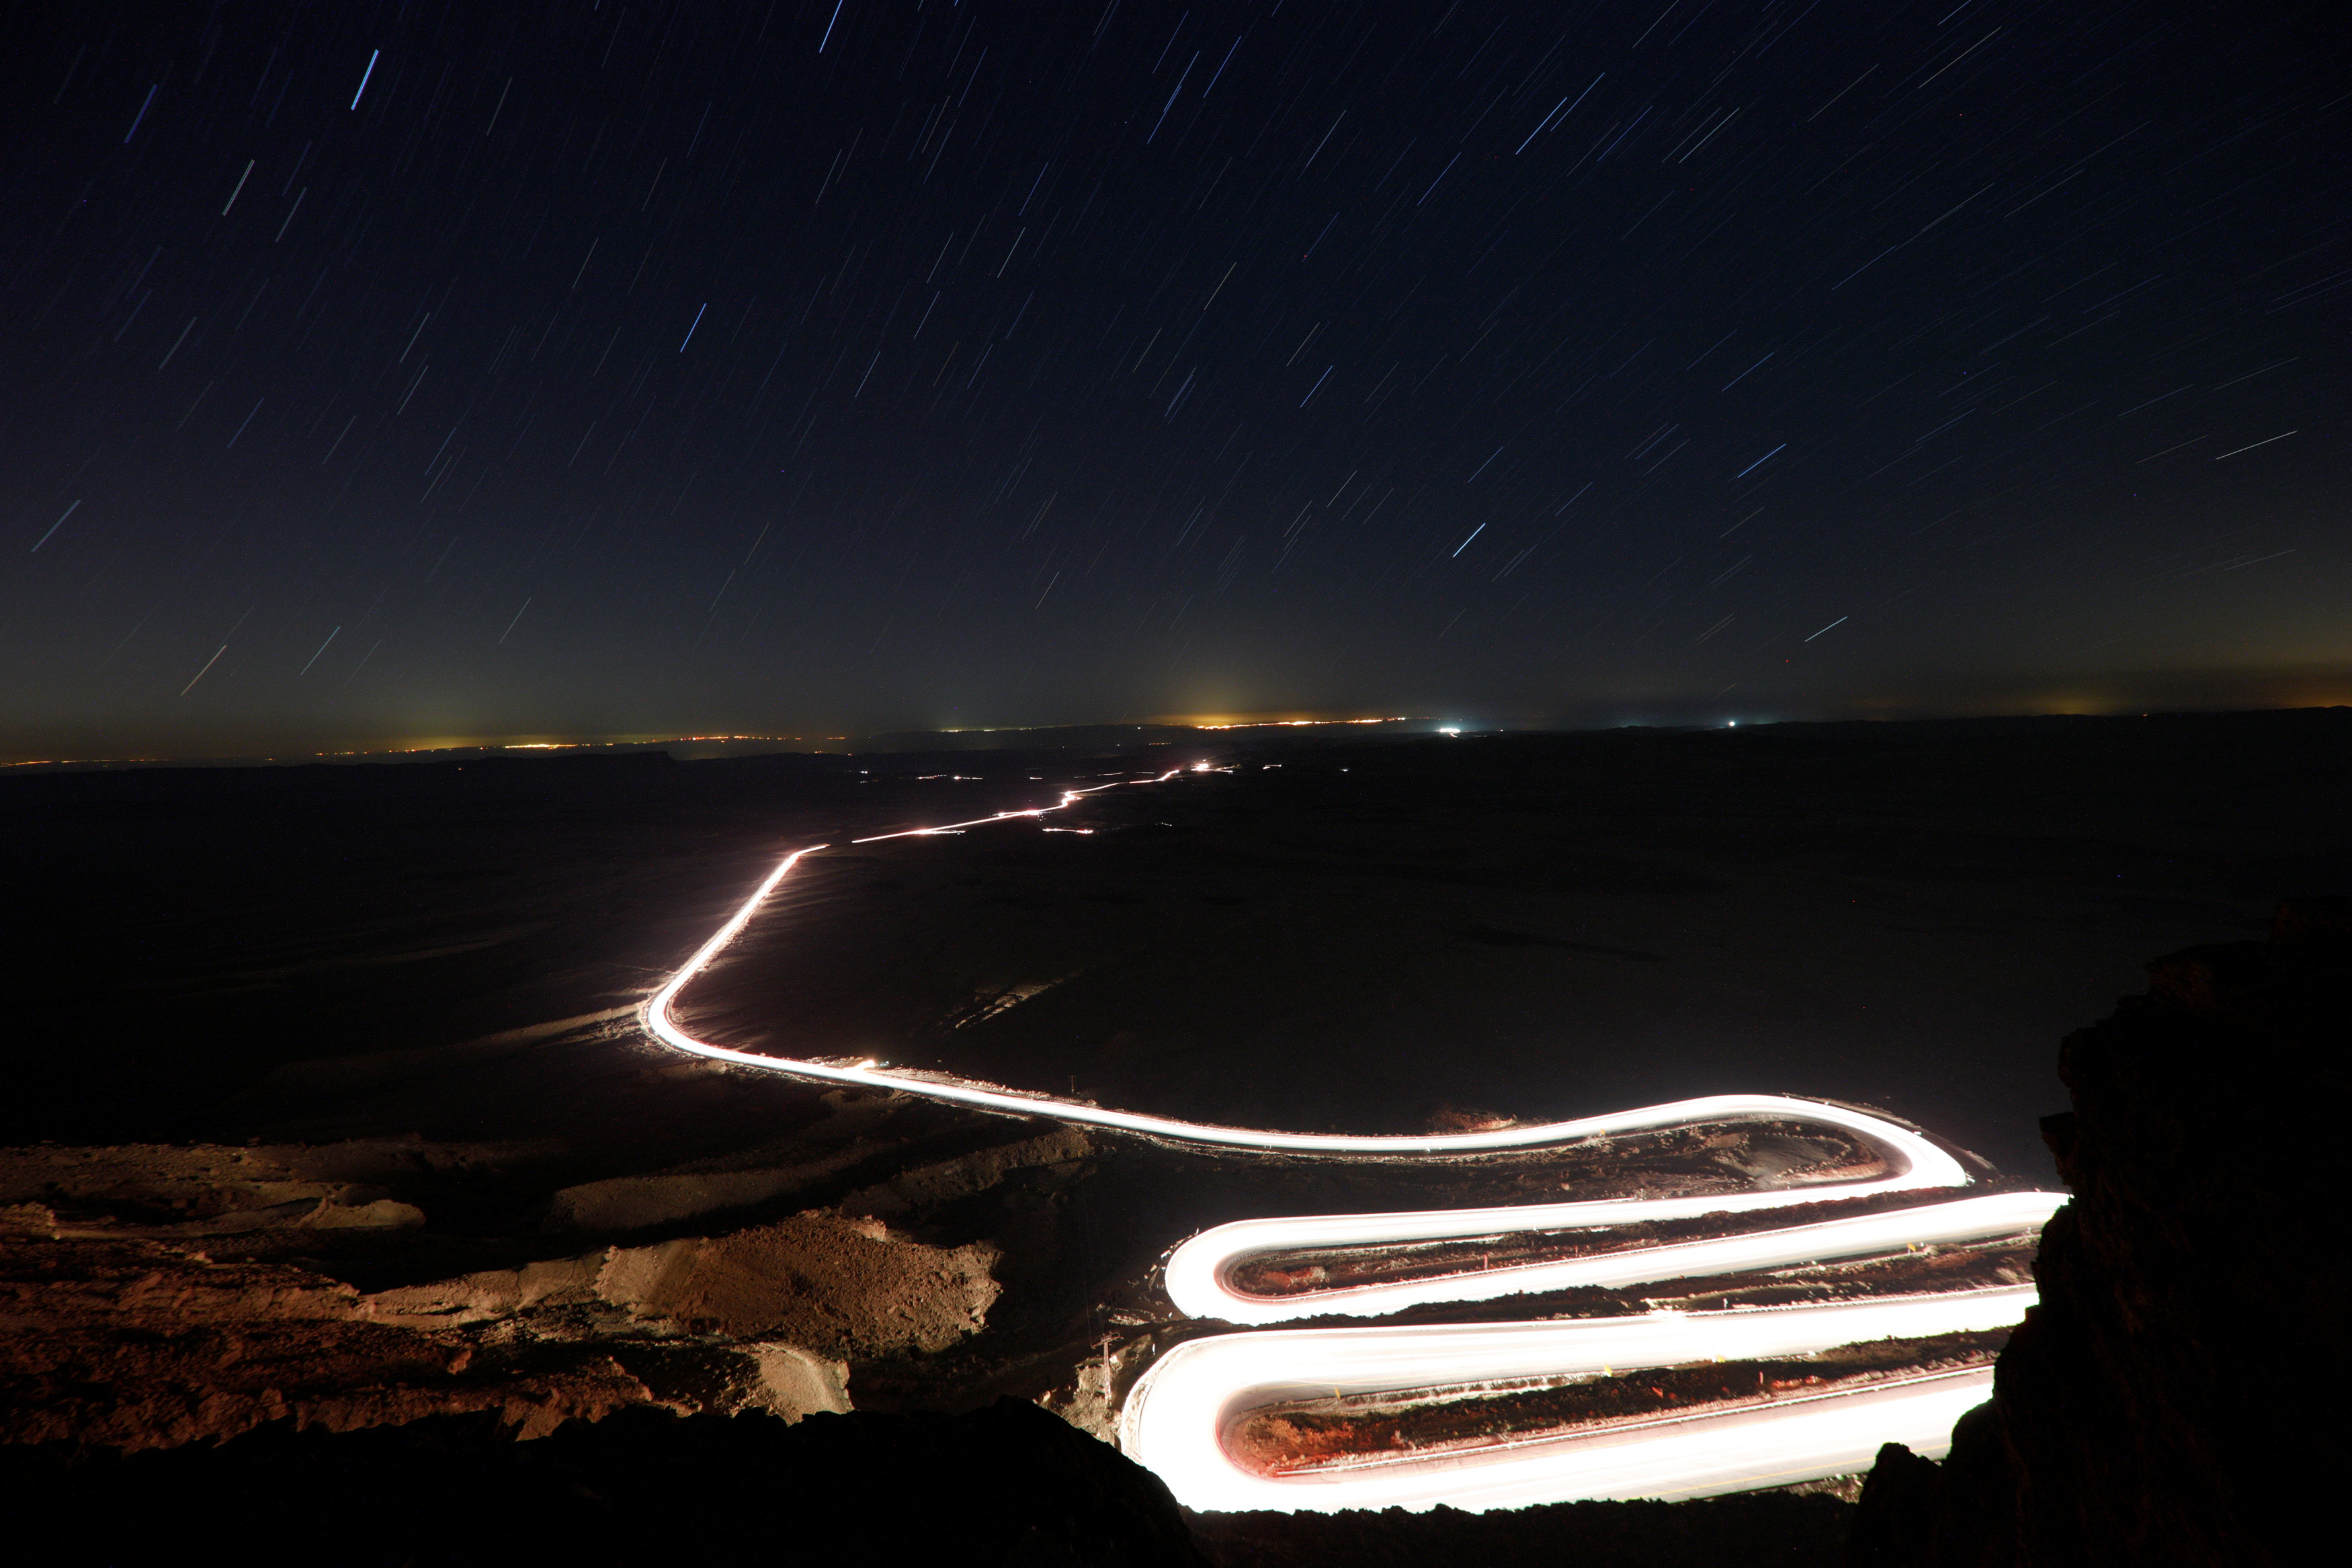 Cars drive through Ramon Crater during the Perseid meteor shower near the town of Mitzpe Ramon, southern Israel, August 12, 2018. REUTERS/Amir Cohen